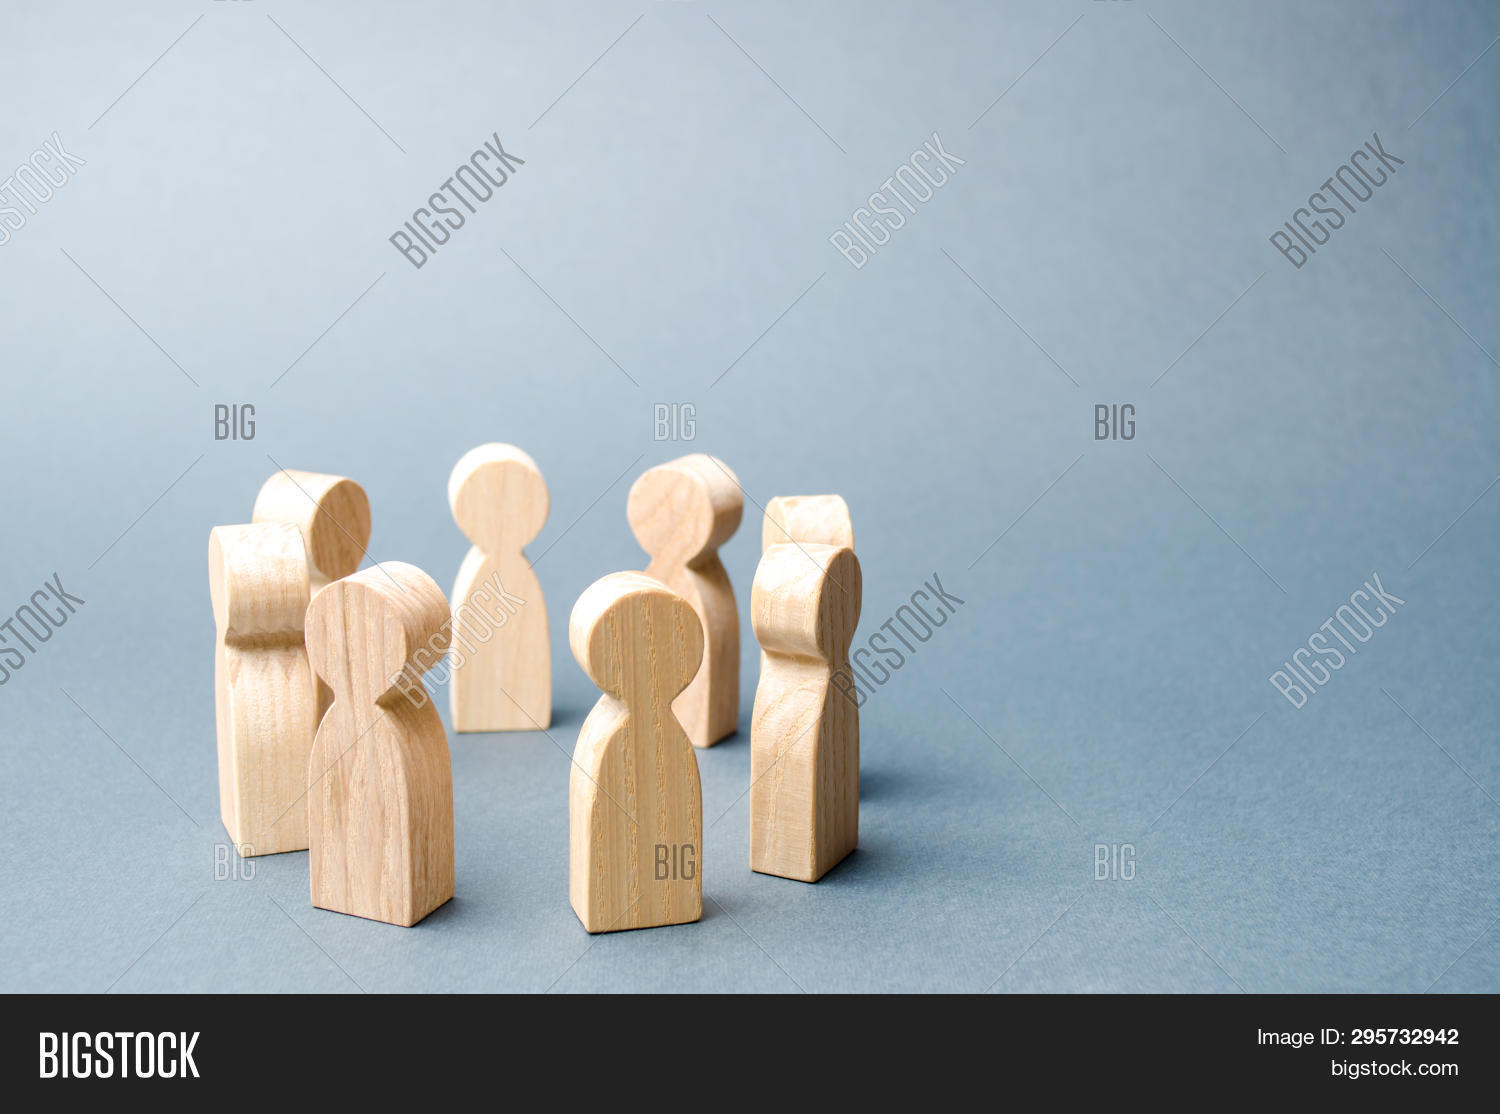 People Stand In A Circle On A Gray Background. Wooden Figures Of People. A Circle Of People. Discuss